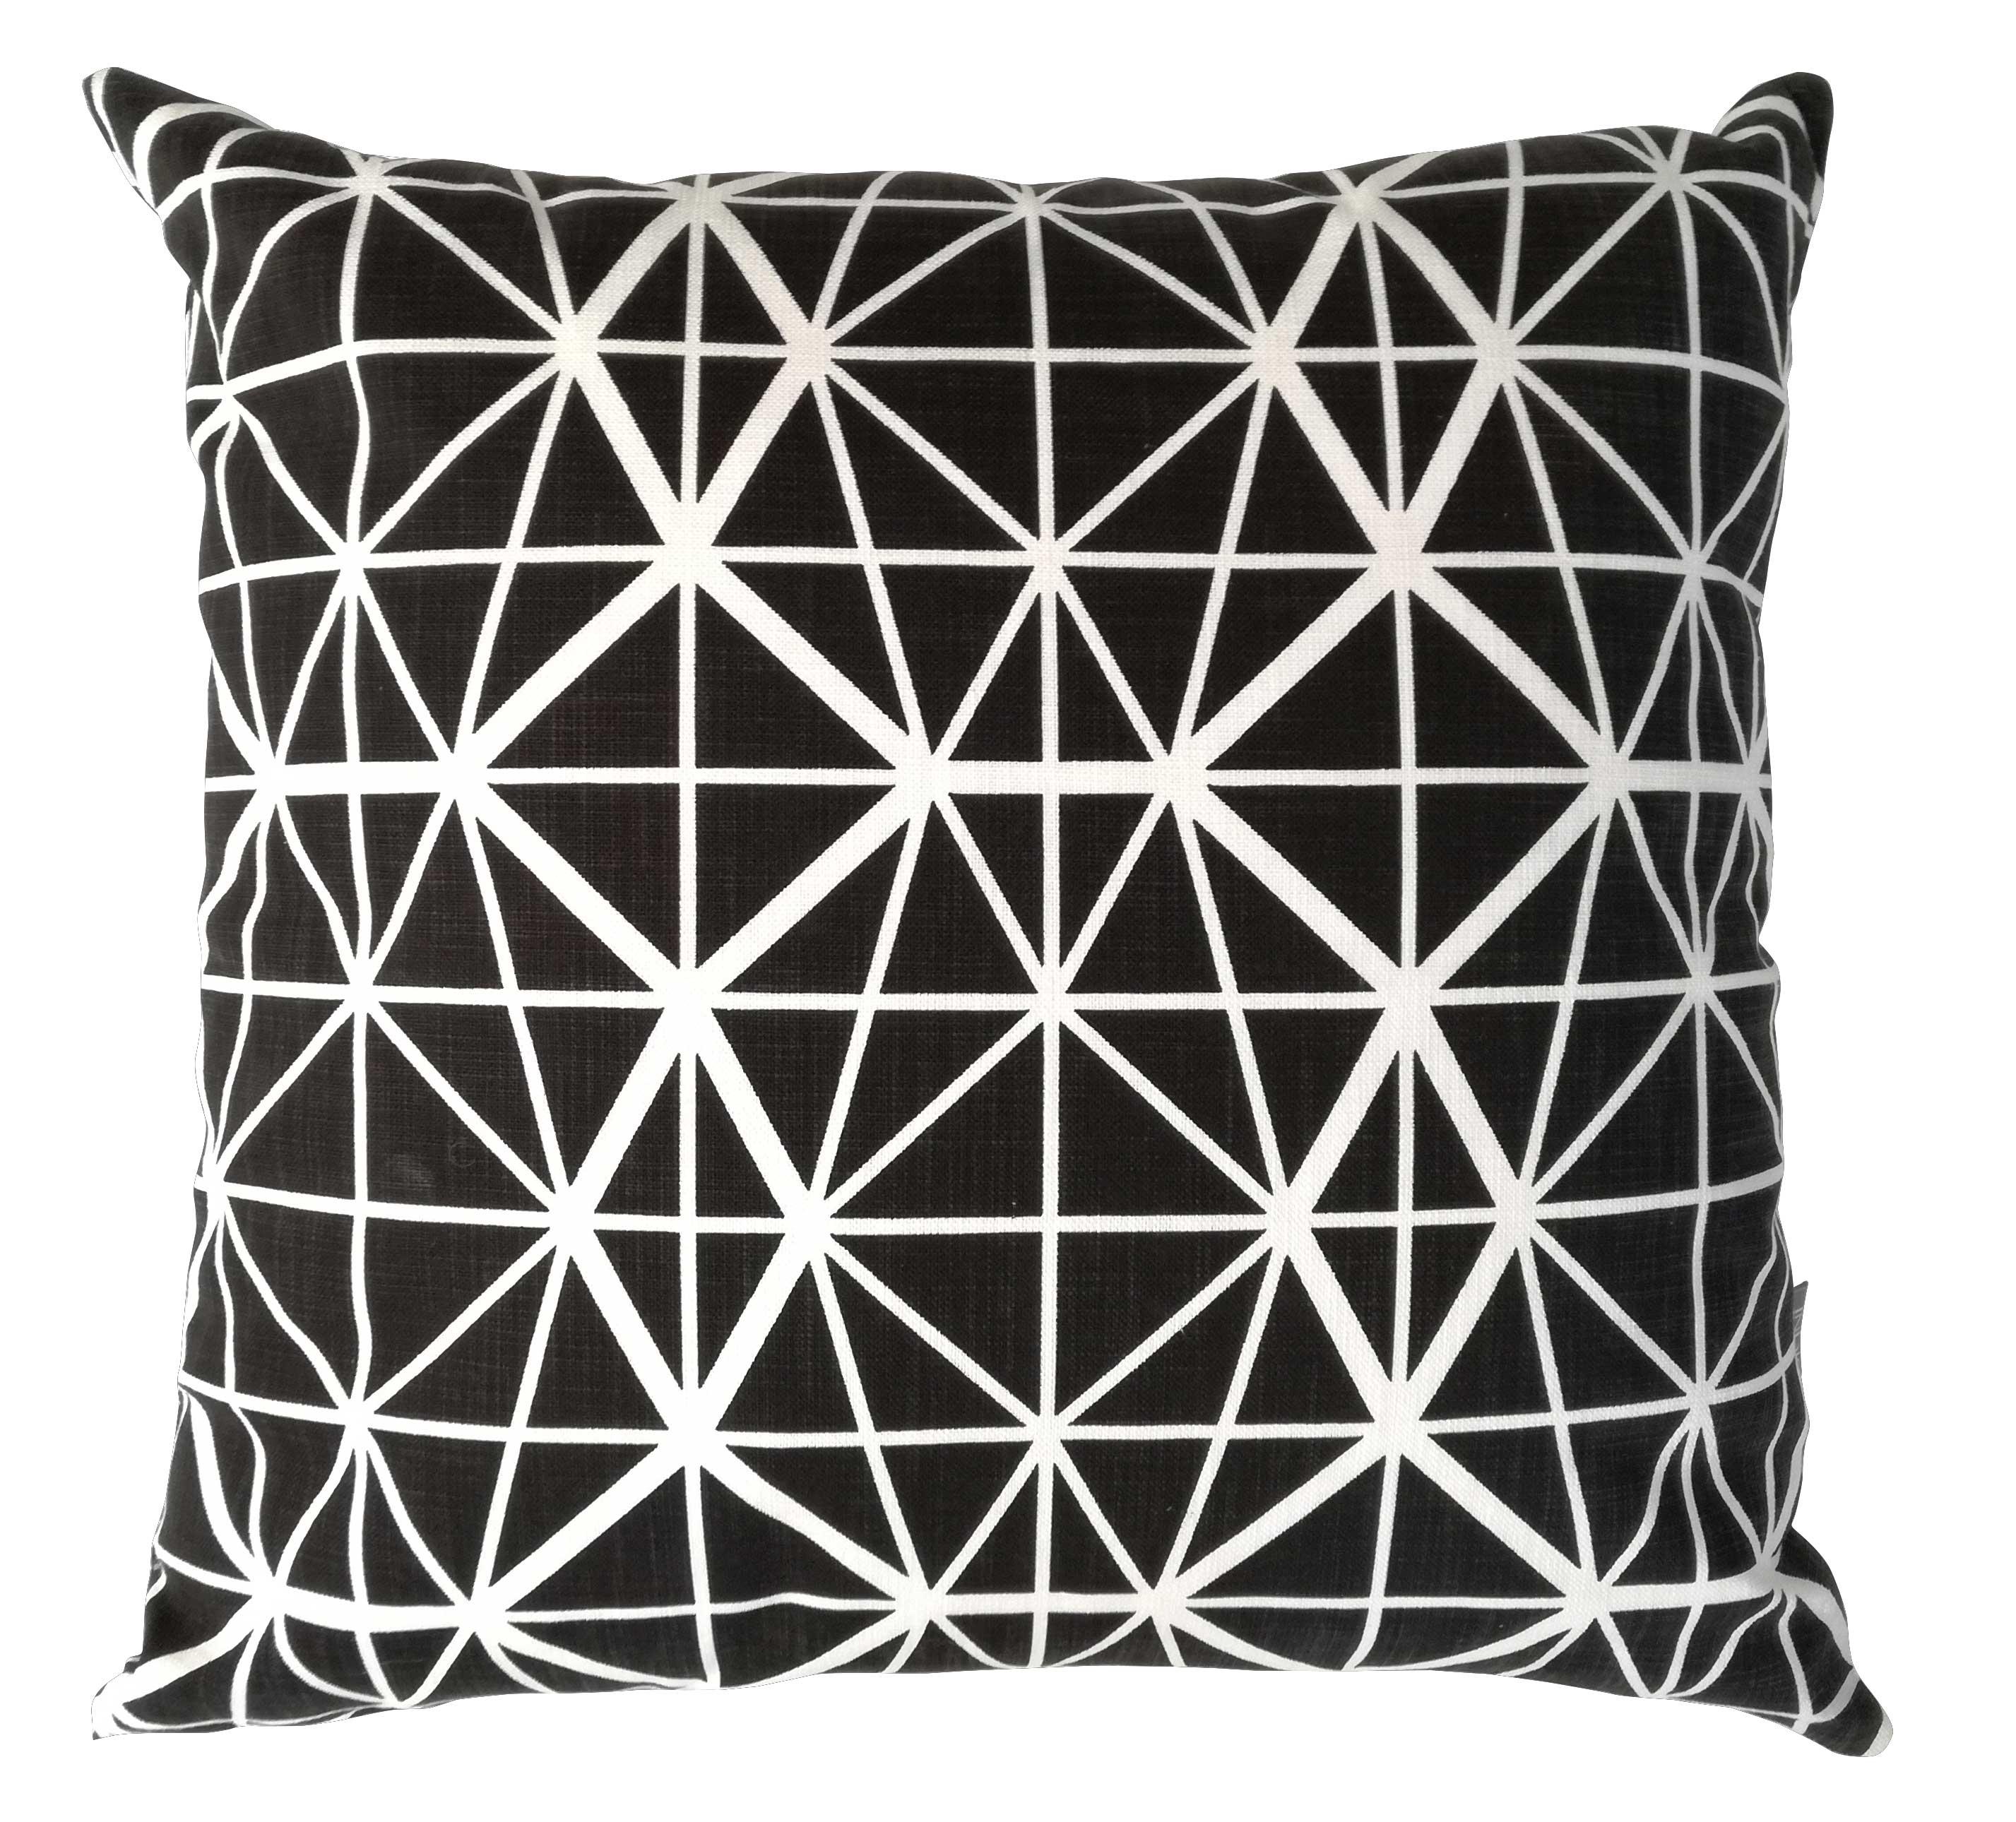 Facet Cushion Covers (View All)